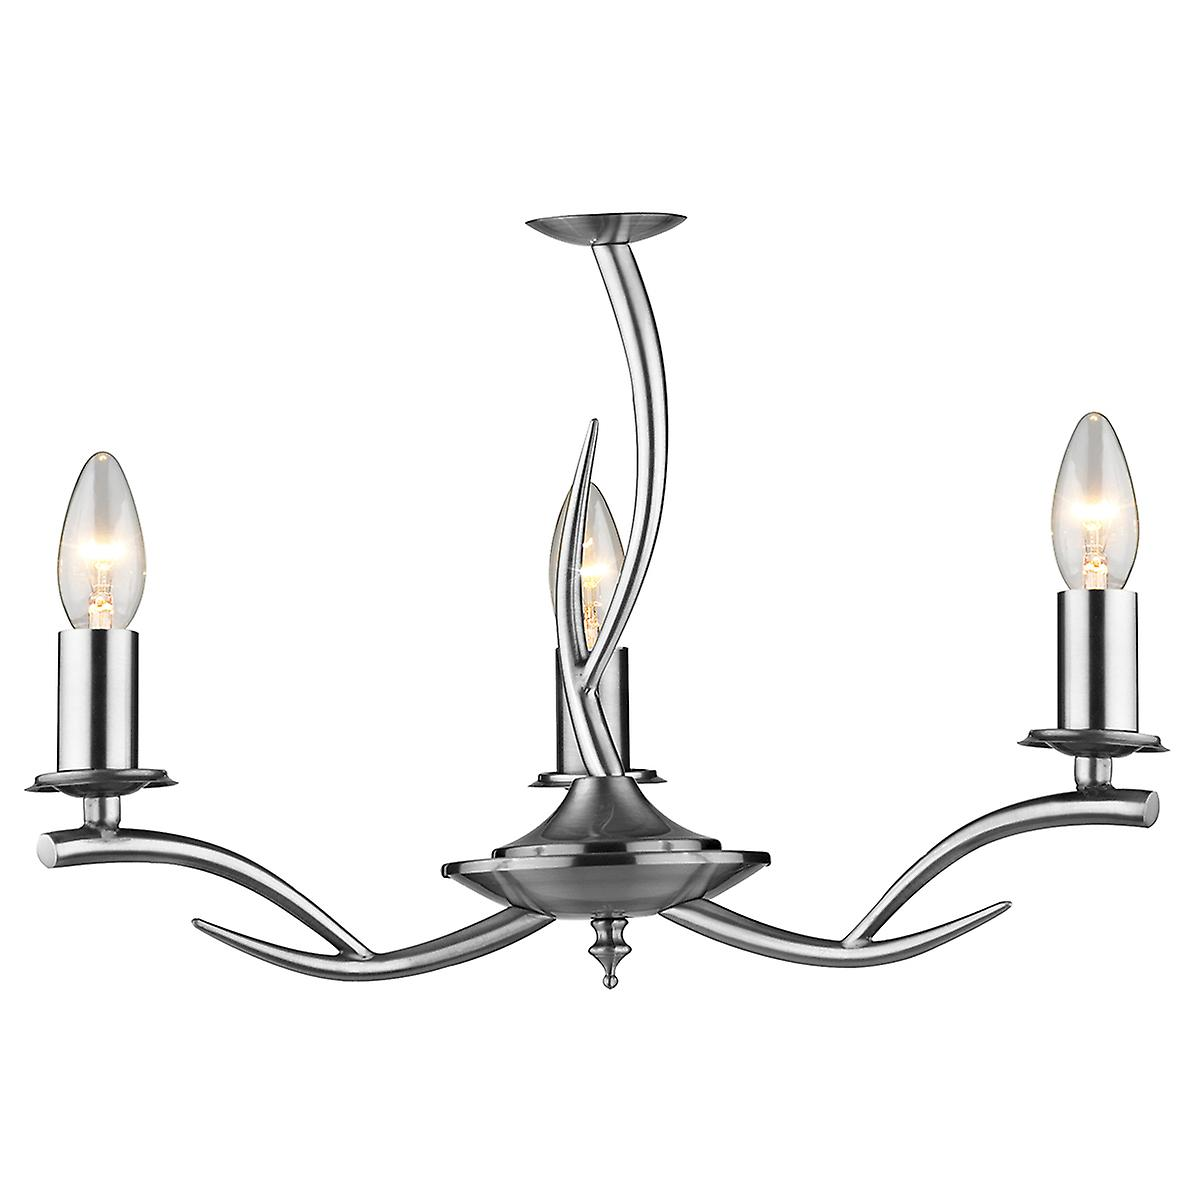 Dar ELK0346 Elka Modern Chrome 3 Arm Double Insulated Ceiling Pendant